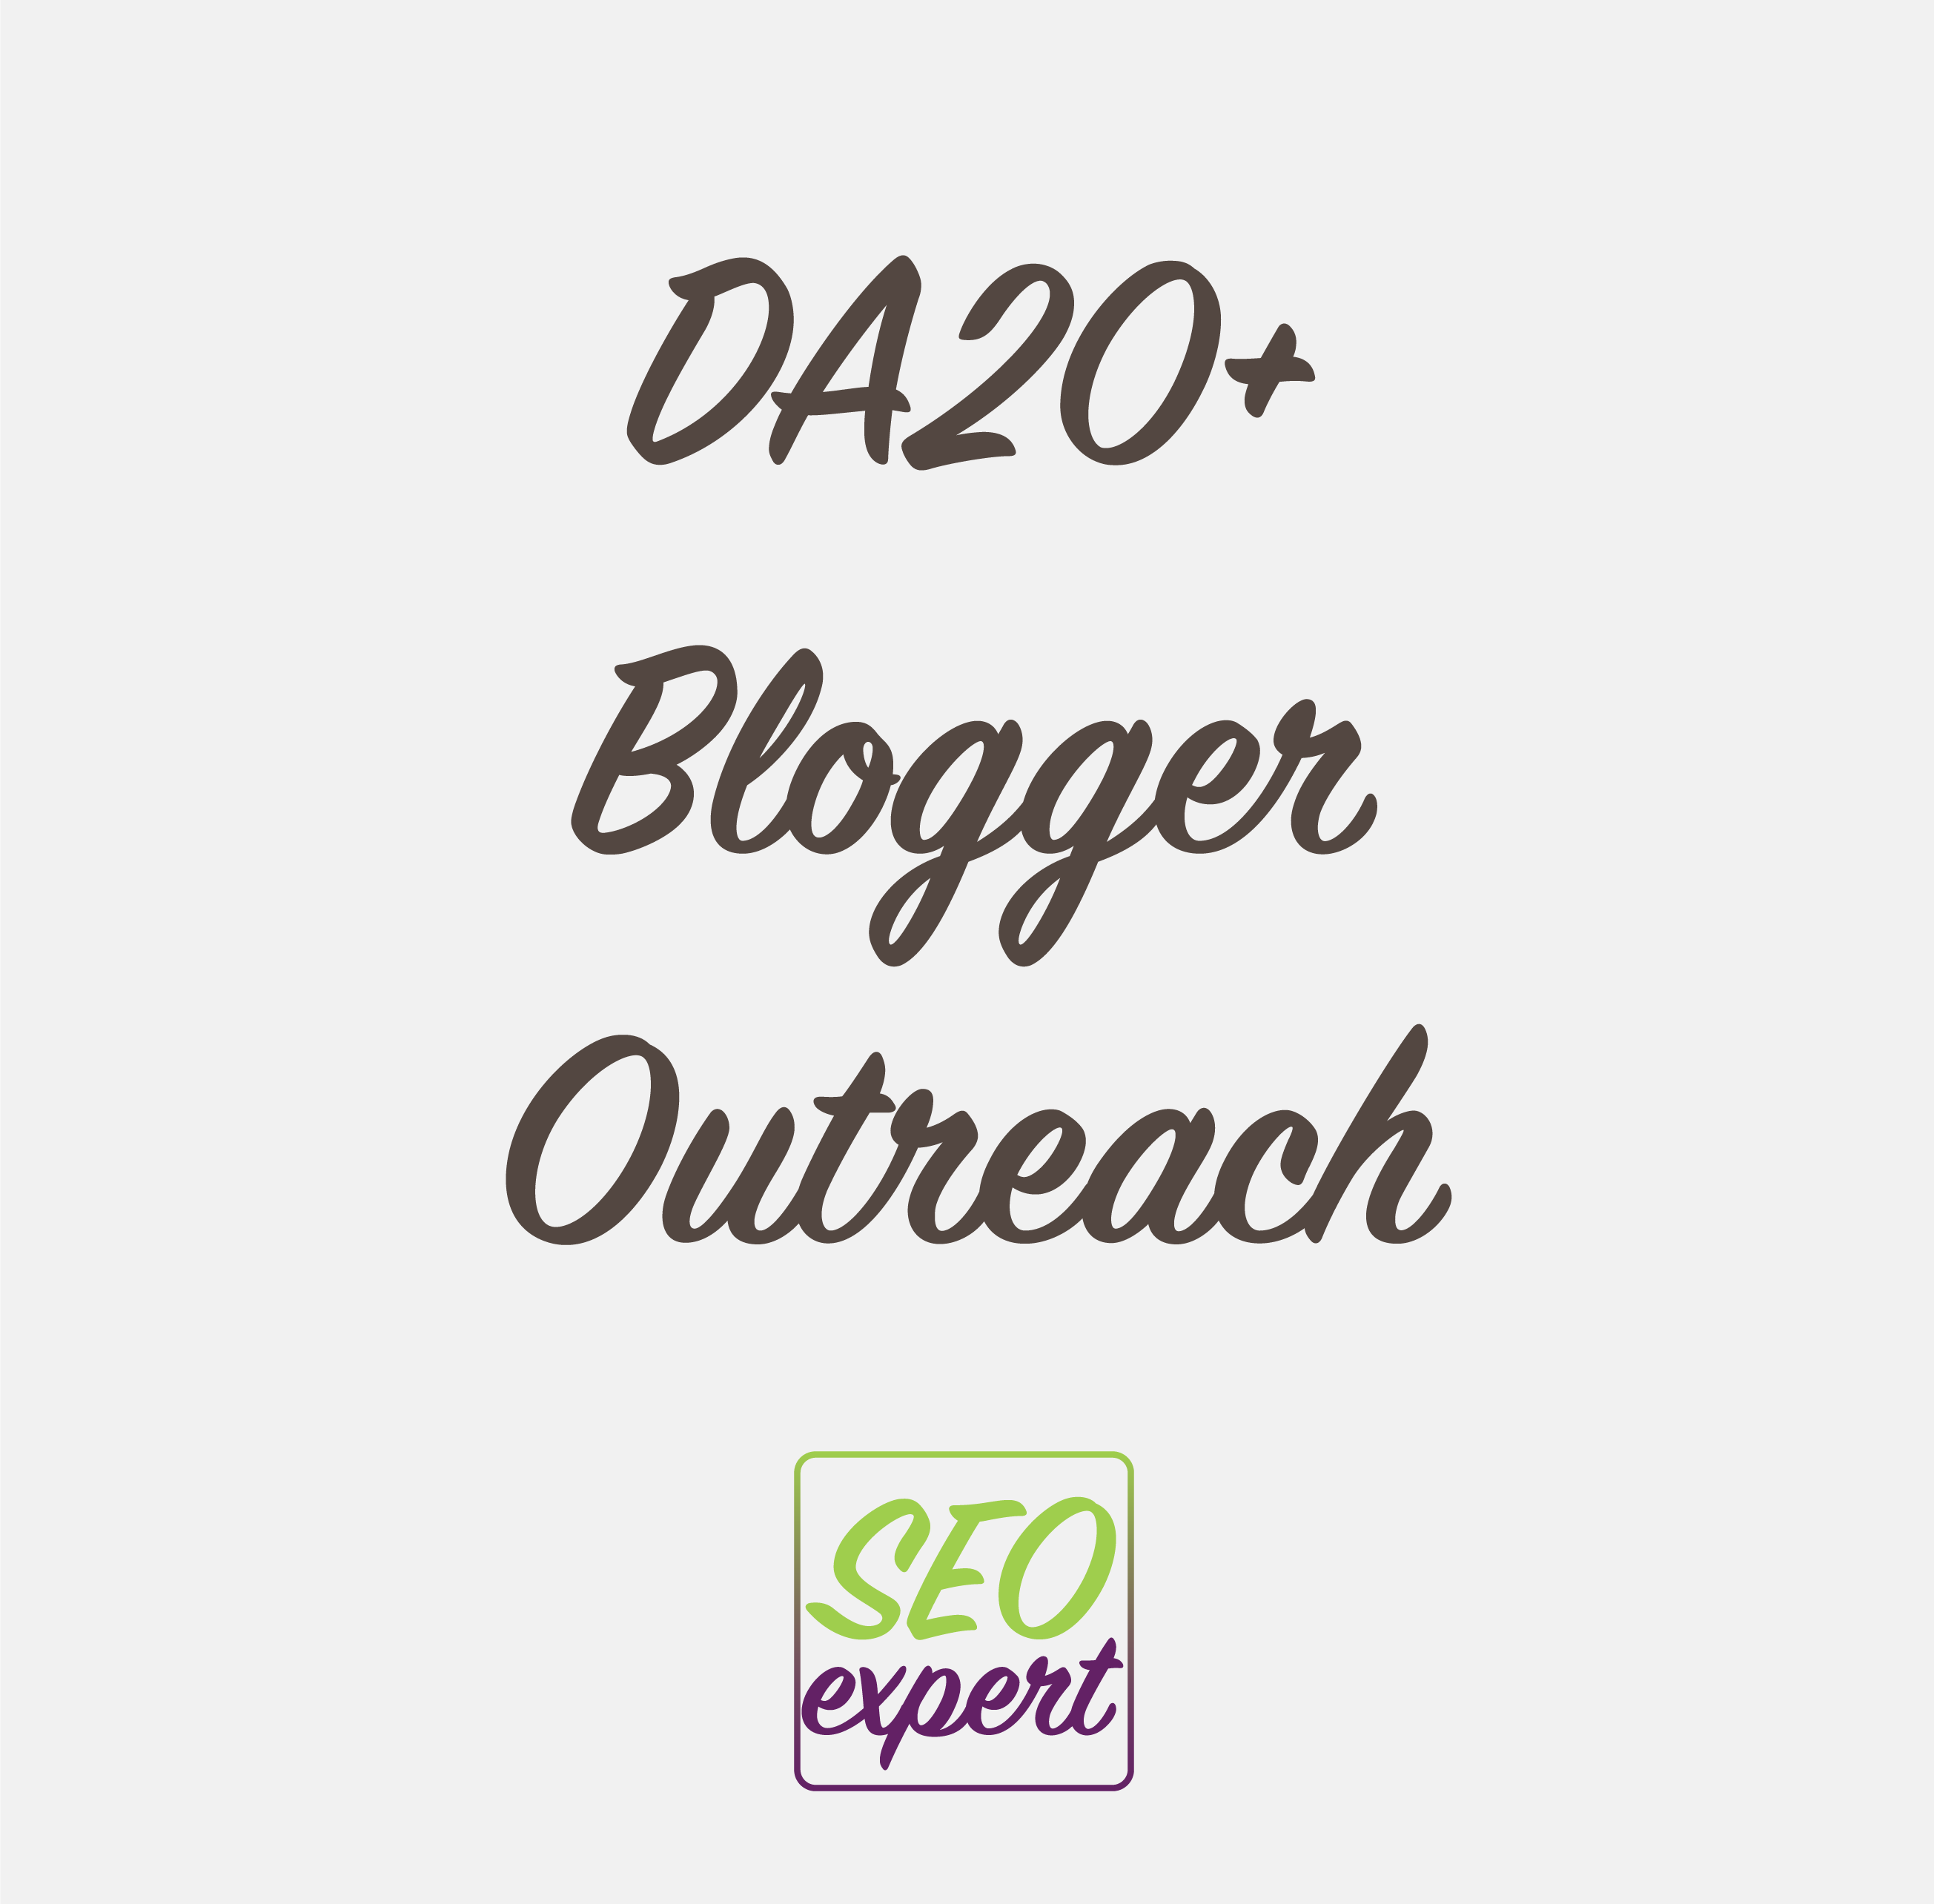 DA20 Blogger Outreach